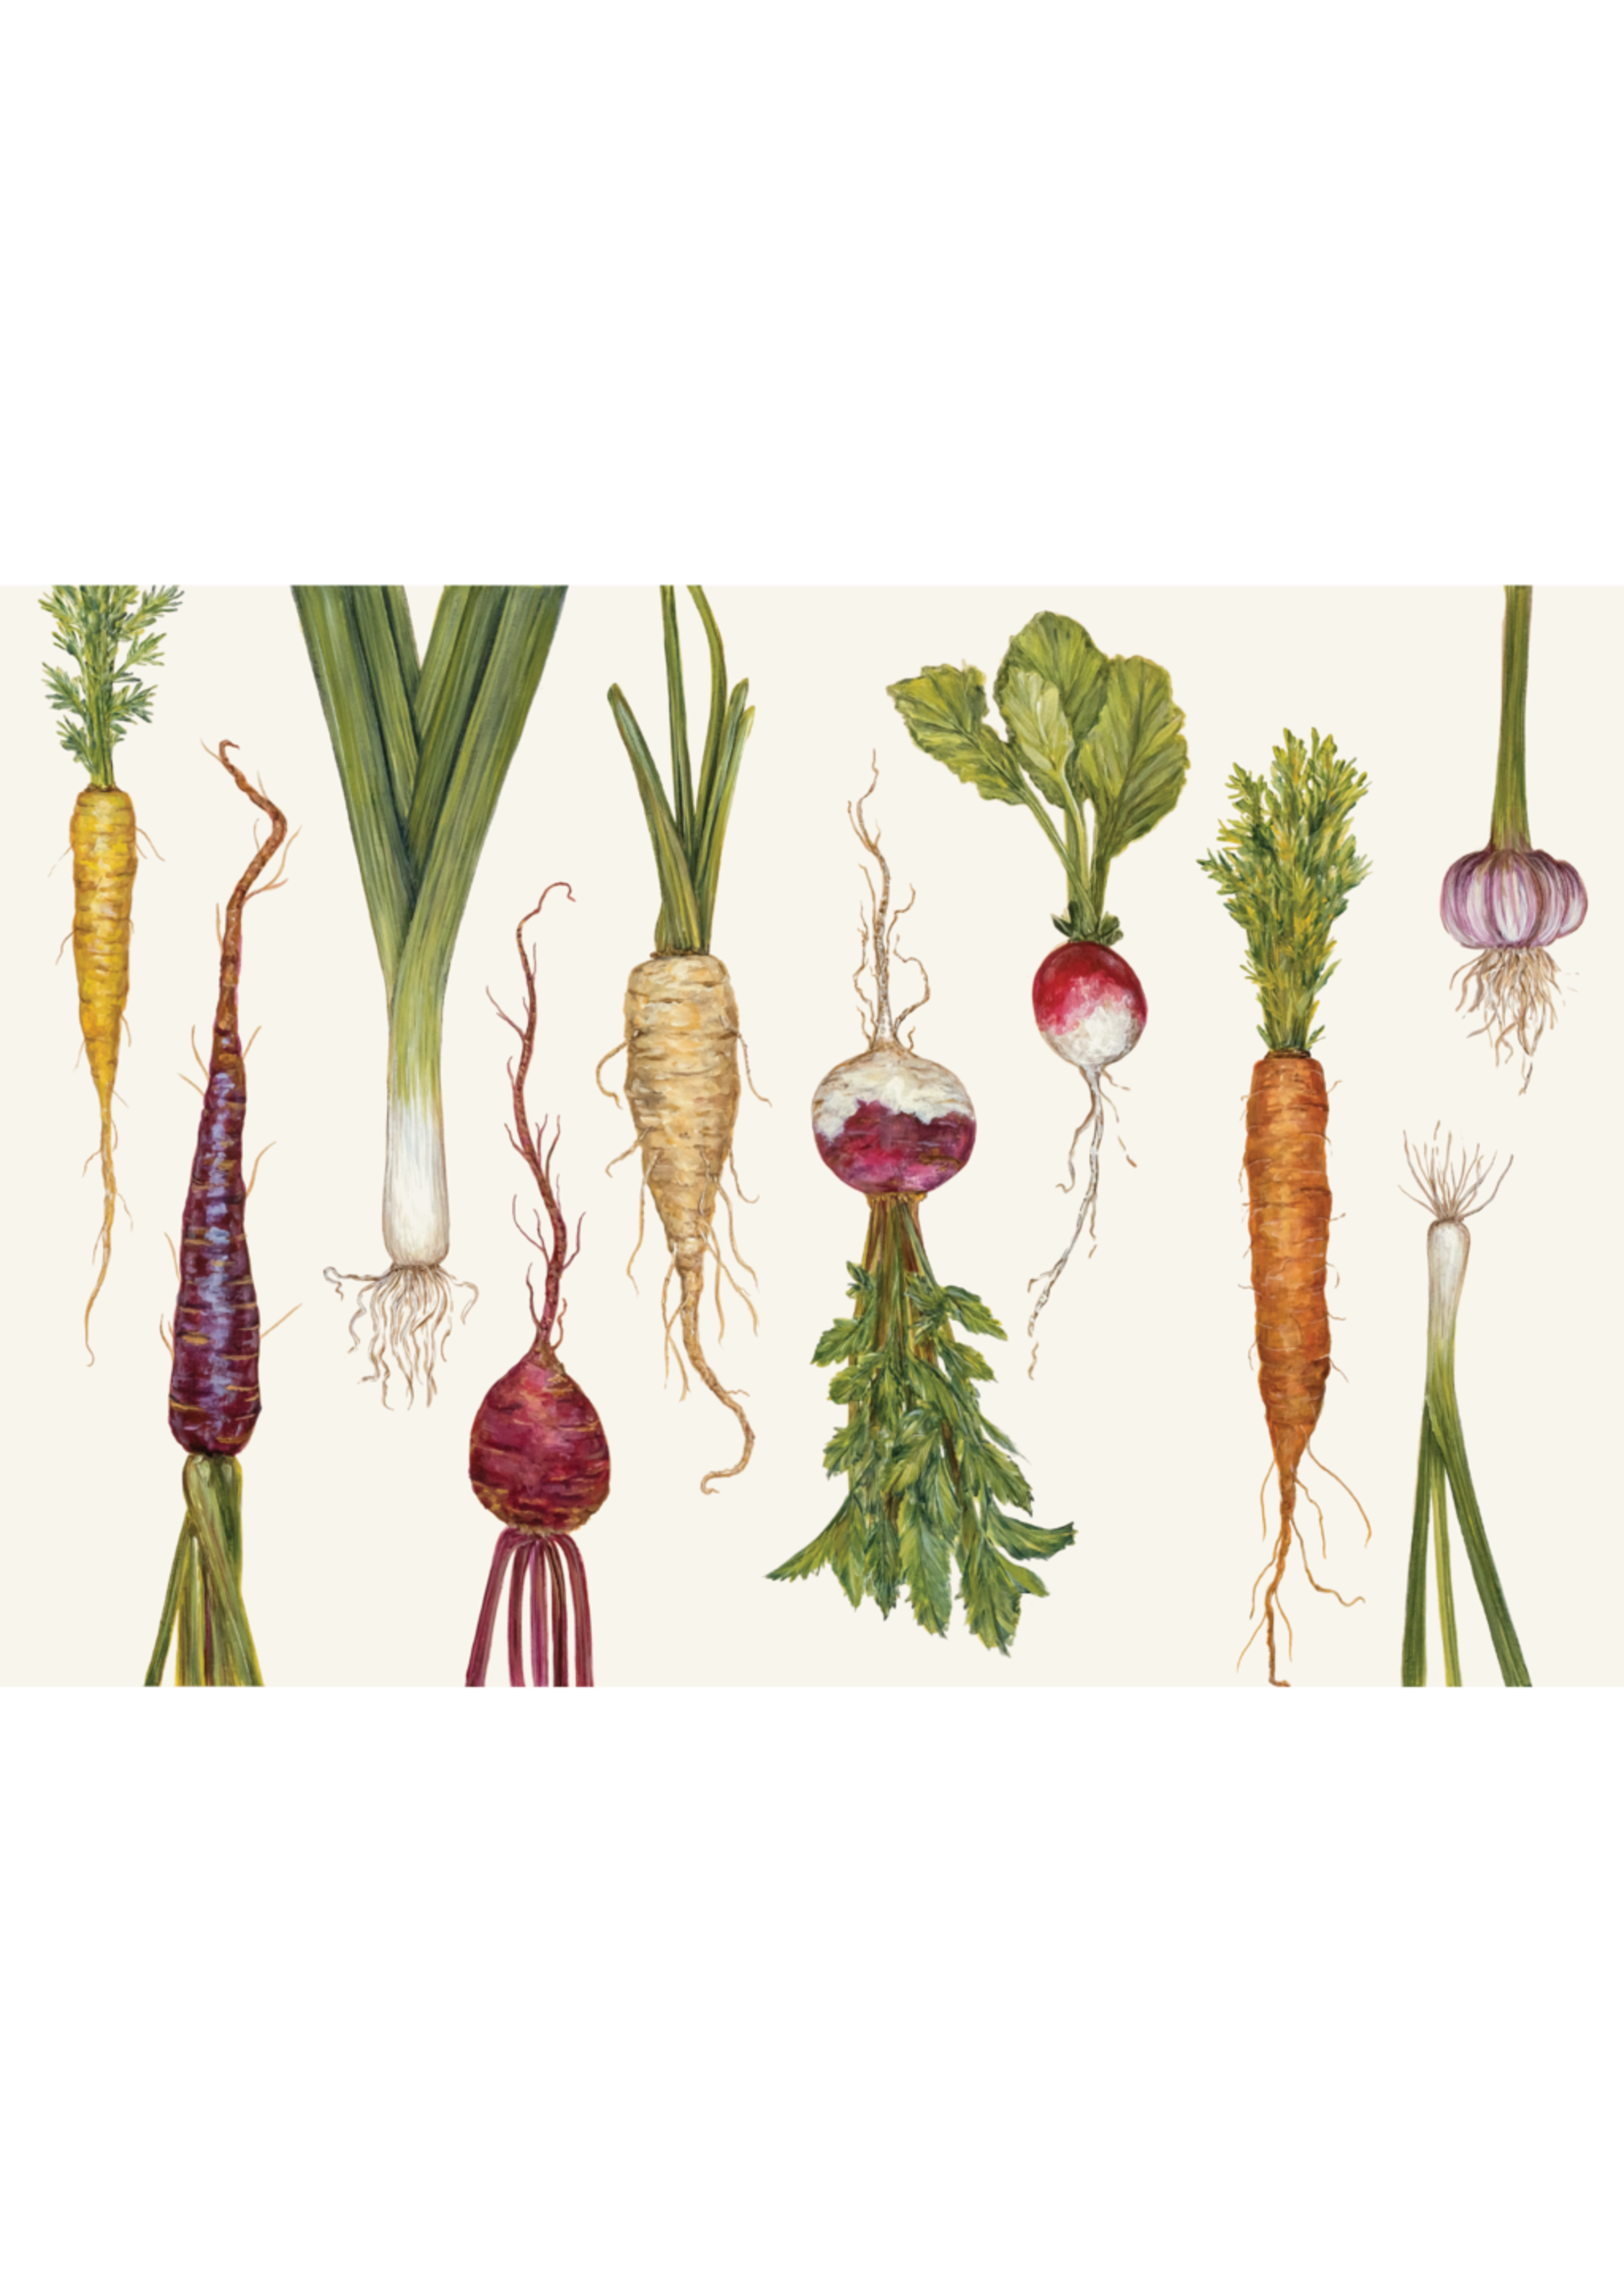 Hester & Cook Paper Placemats - Natural Farmer's Market